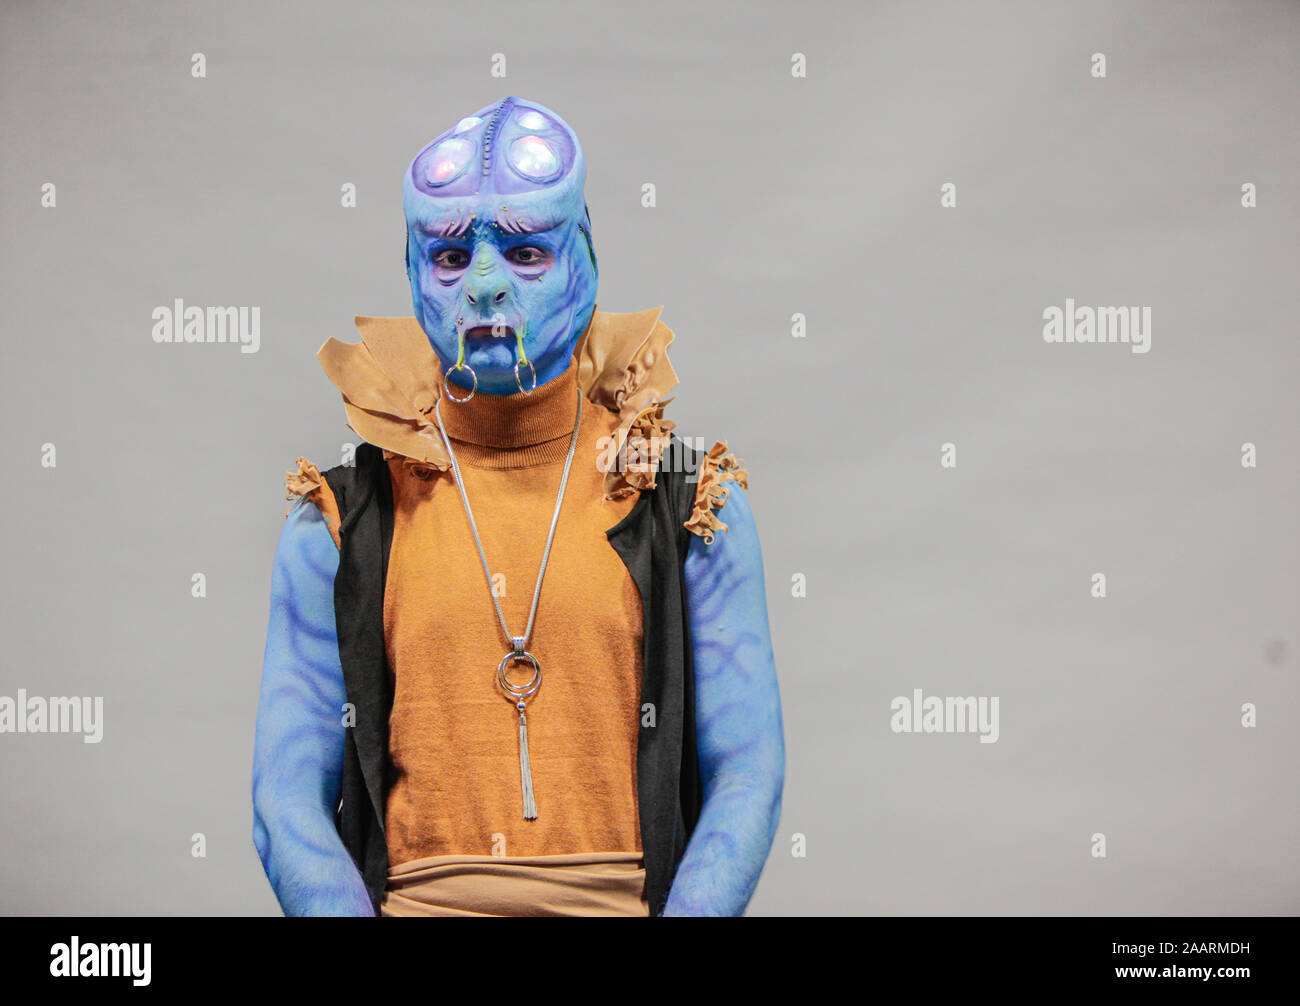 Body Paint Event High Resolution Stock Photography And Images Alamy